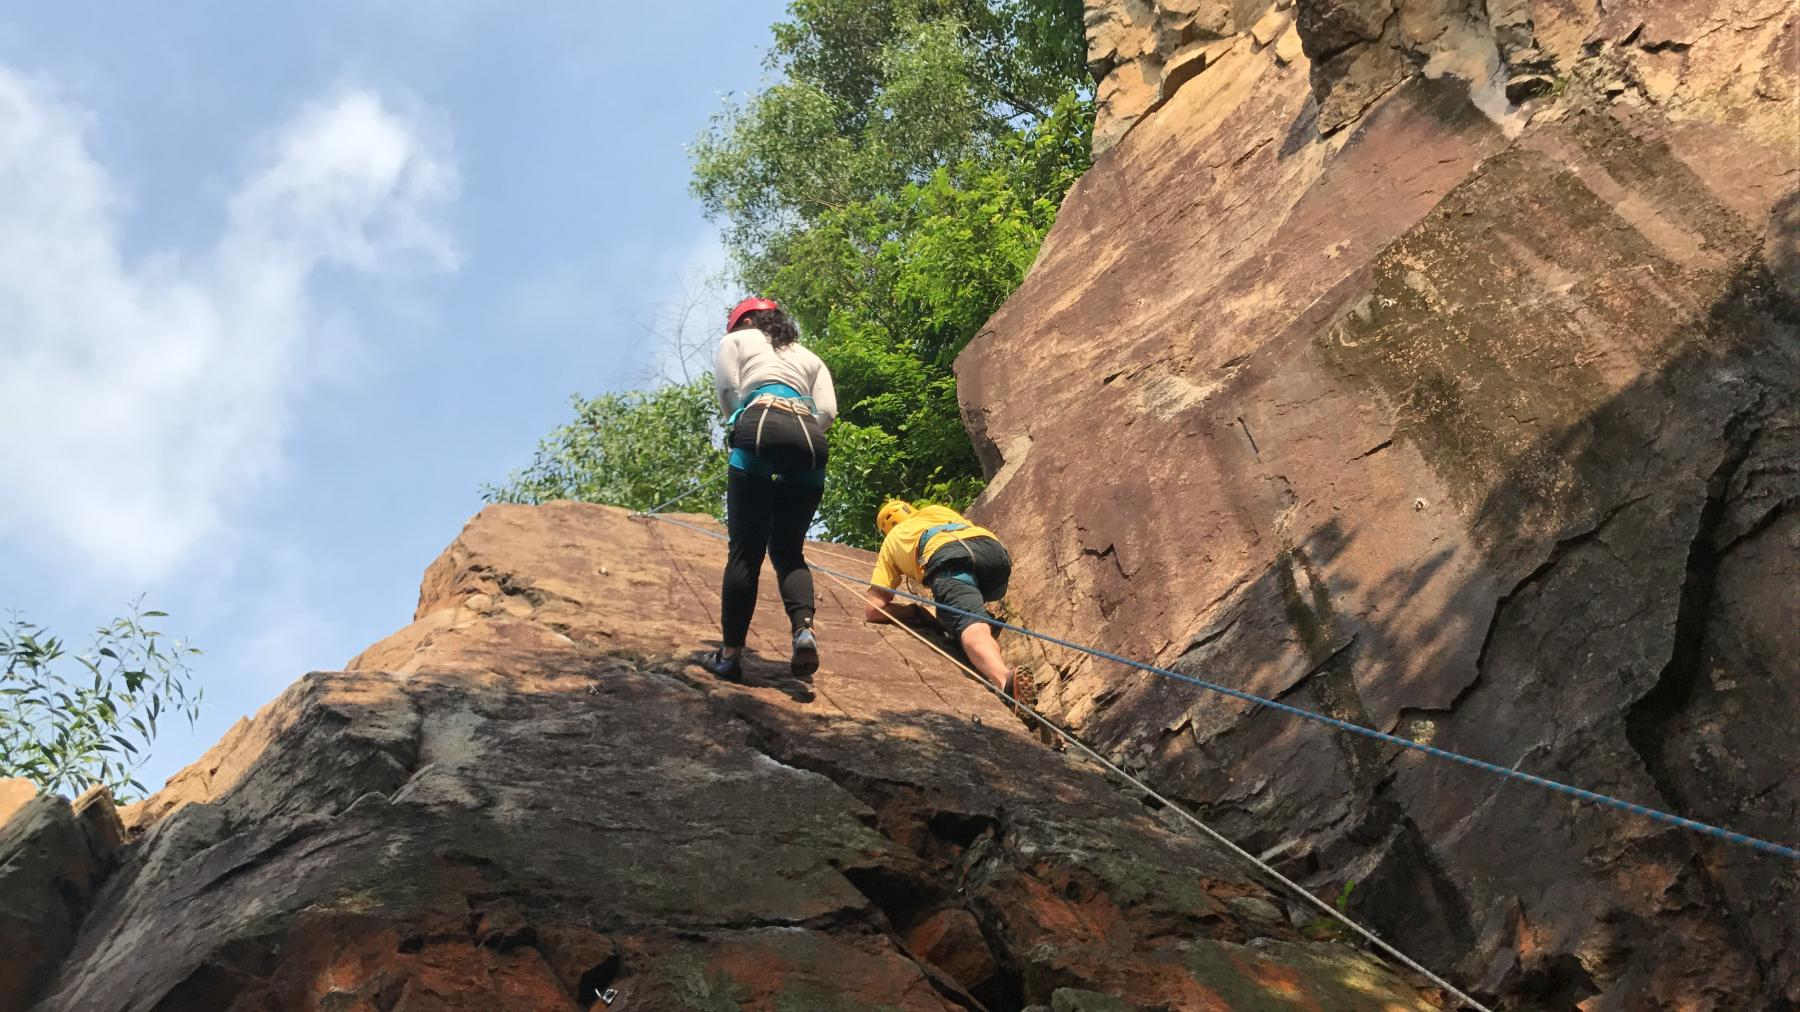 Intro Course: Natural Wall Rock Climbing and Abseil starting at Dairy Farm Rock Climbing Wall Singapore